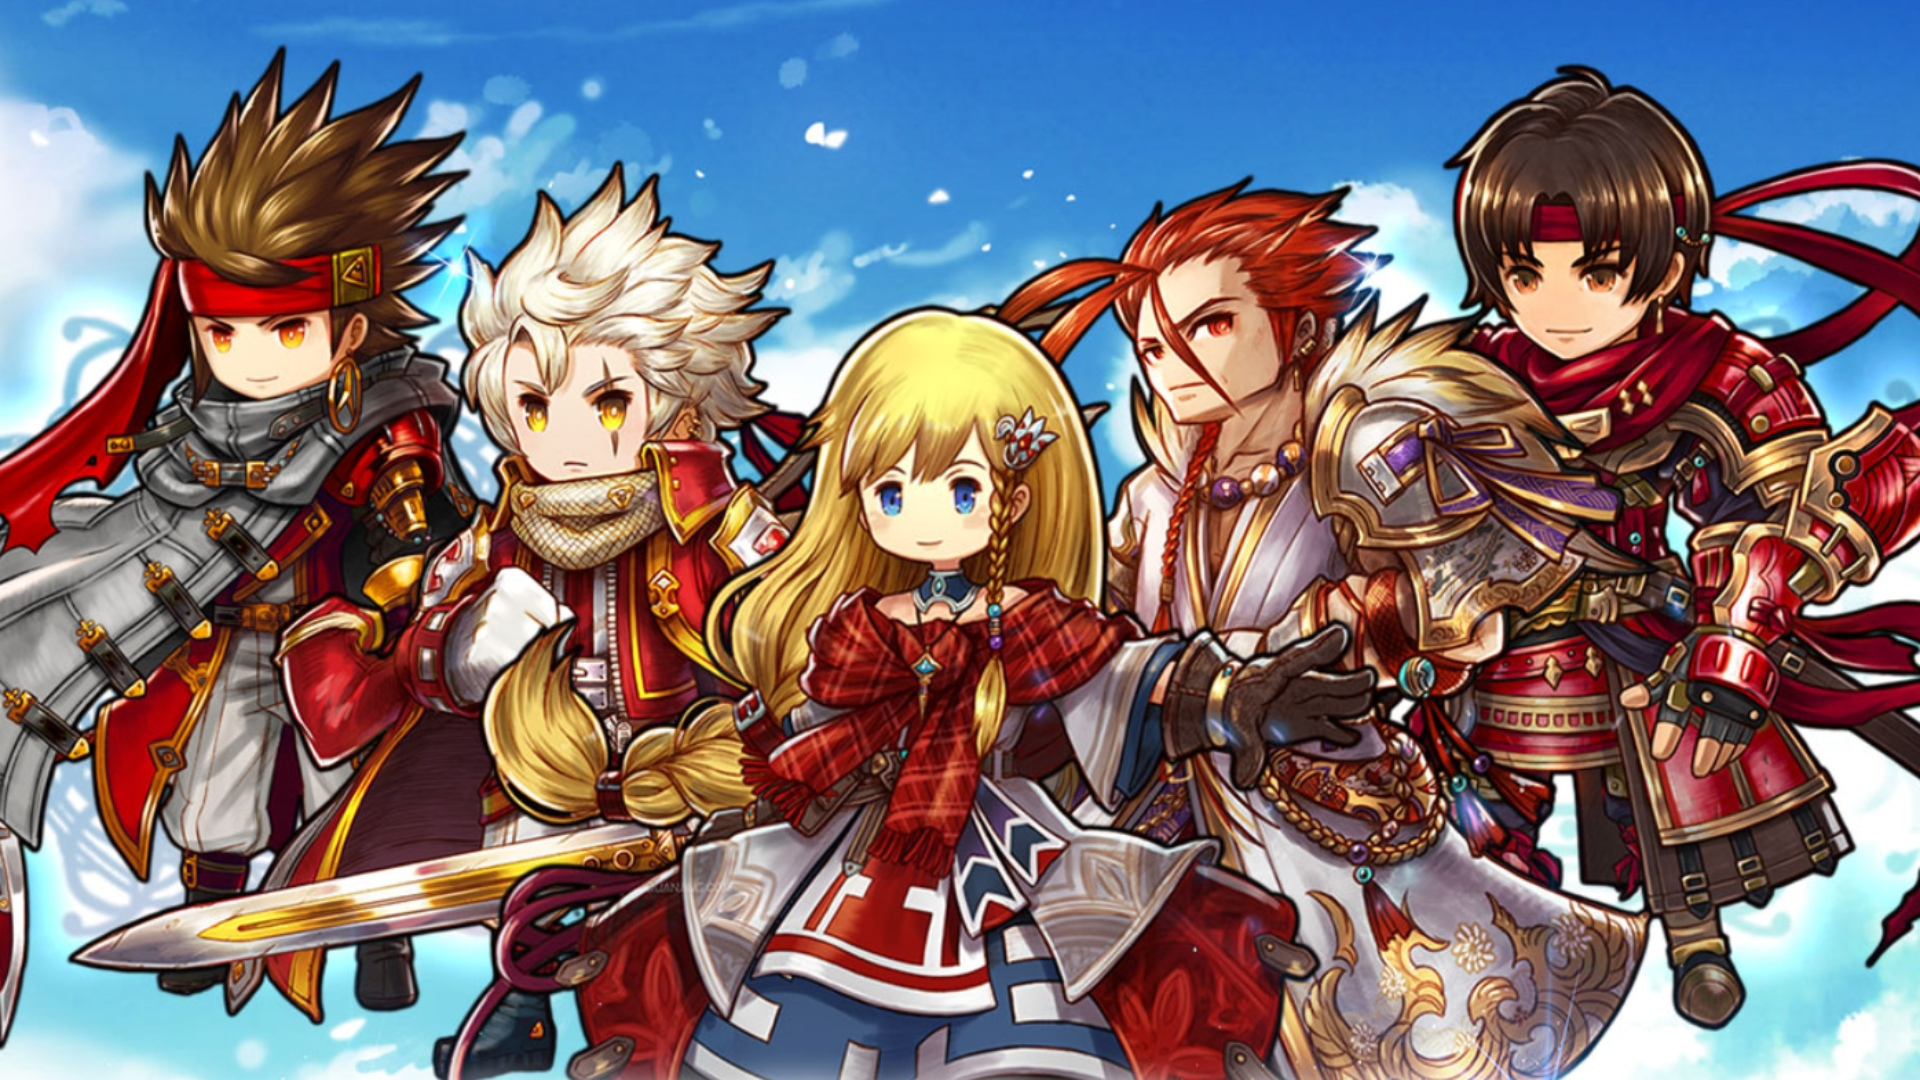 Strategy RPG Arc the Lad R brings the legendary tactics series to mobile